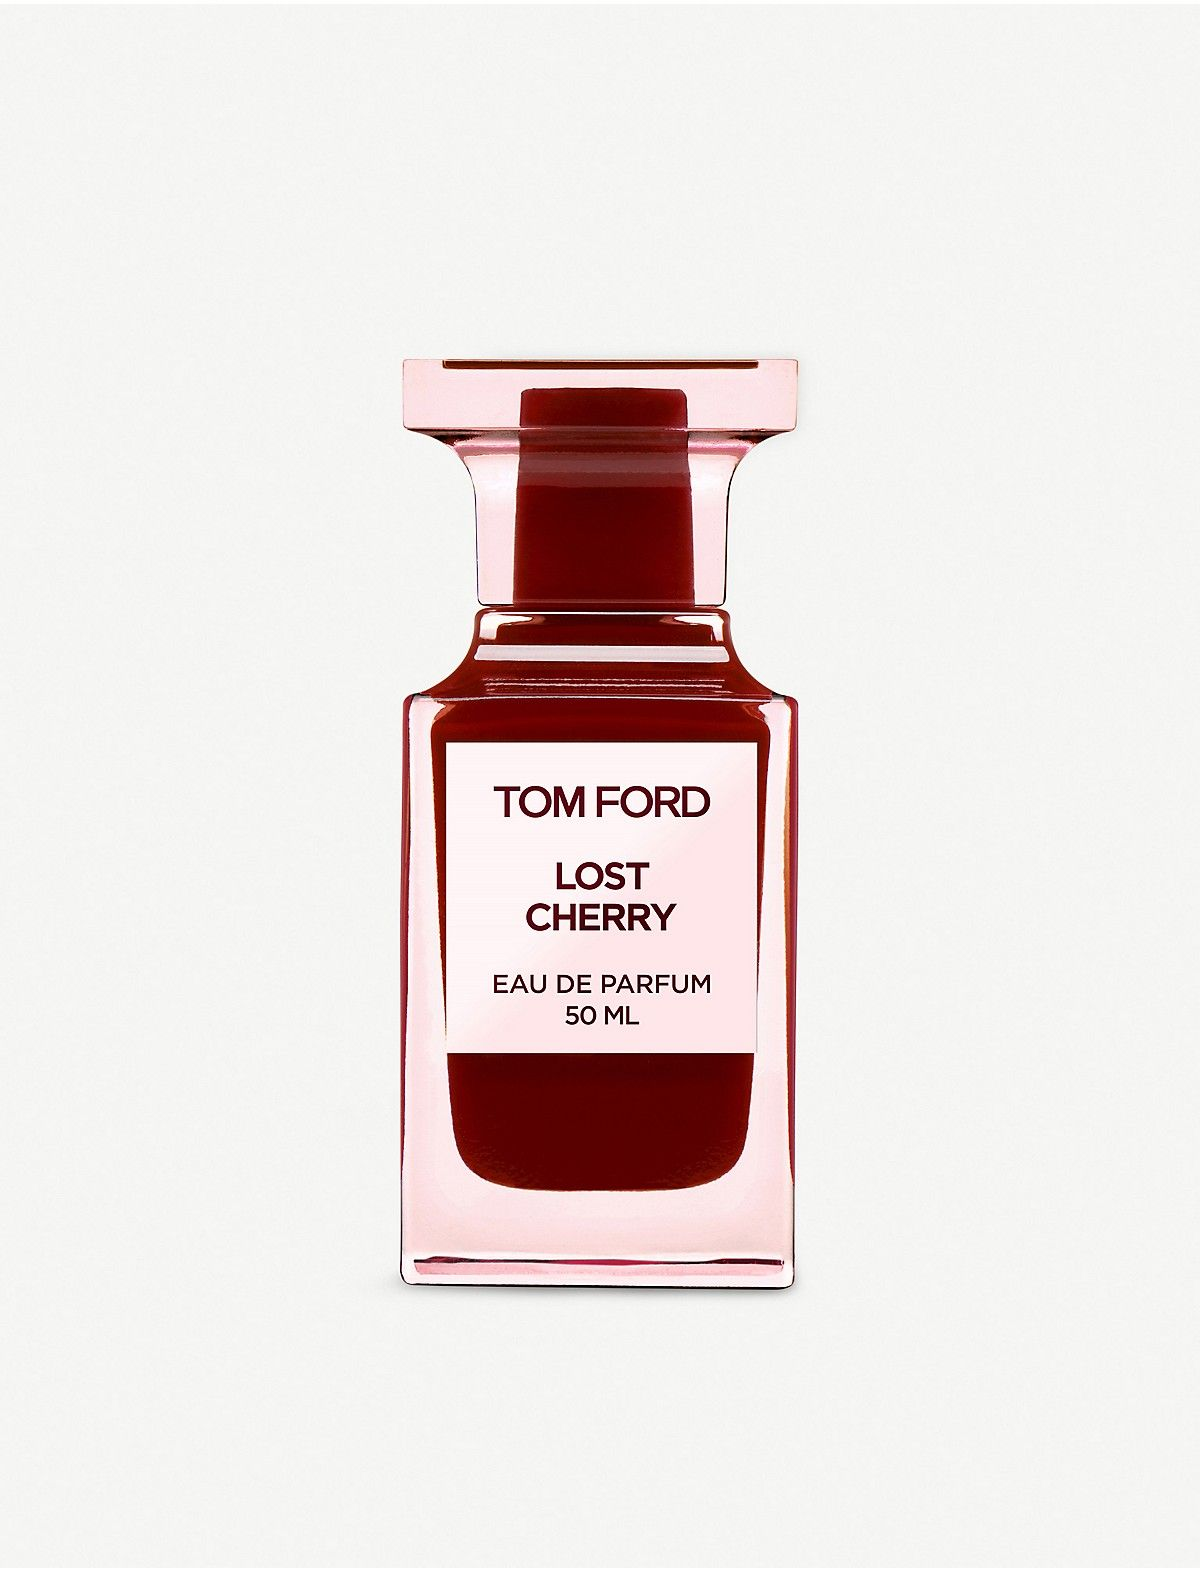 Tom Ford Lost Cherry Eau De Parfum Want It All Pinterest